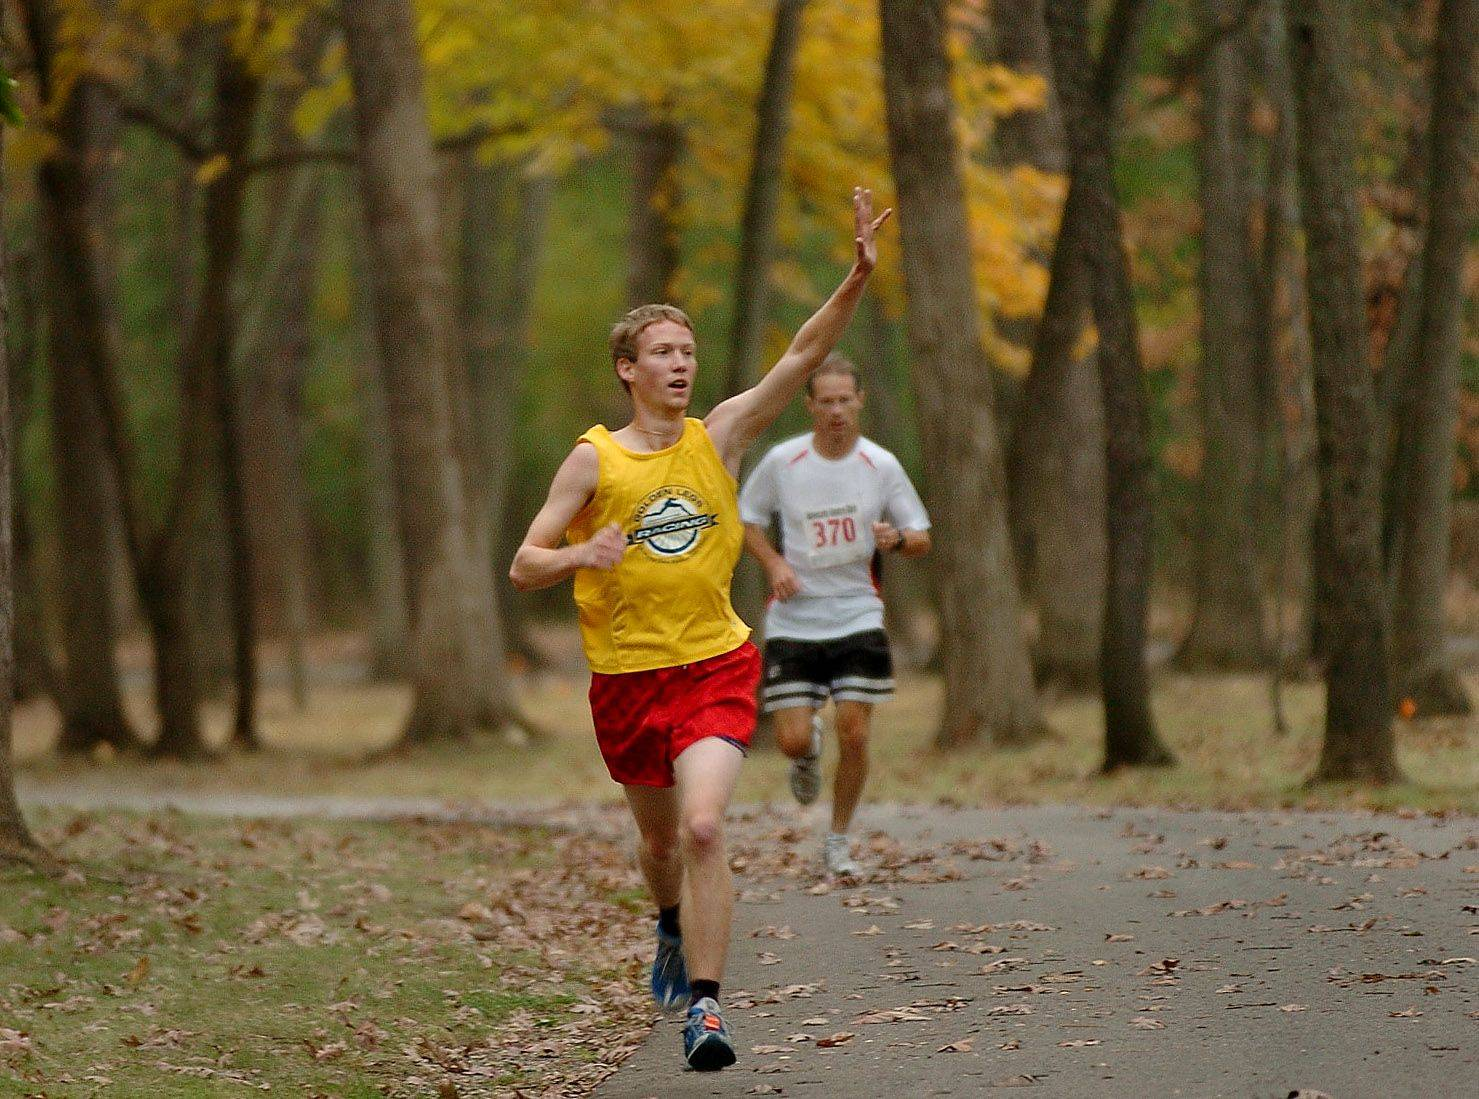 Tony Volpentesta of Mundelein signals to a friend as he runs through the woods during the first-ever Advocate Condell Centre Club Pink Ribbon run at St. Mary of the Lake Seminary in Mundelein. Tony eventually finished second in the 5k race.